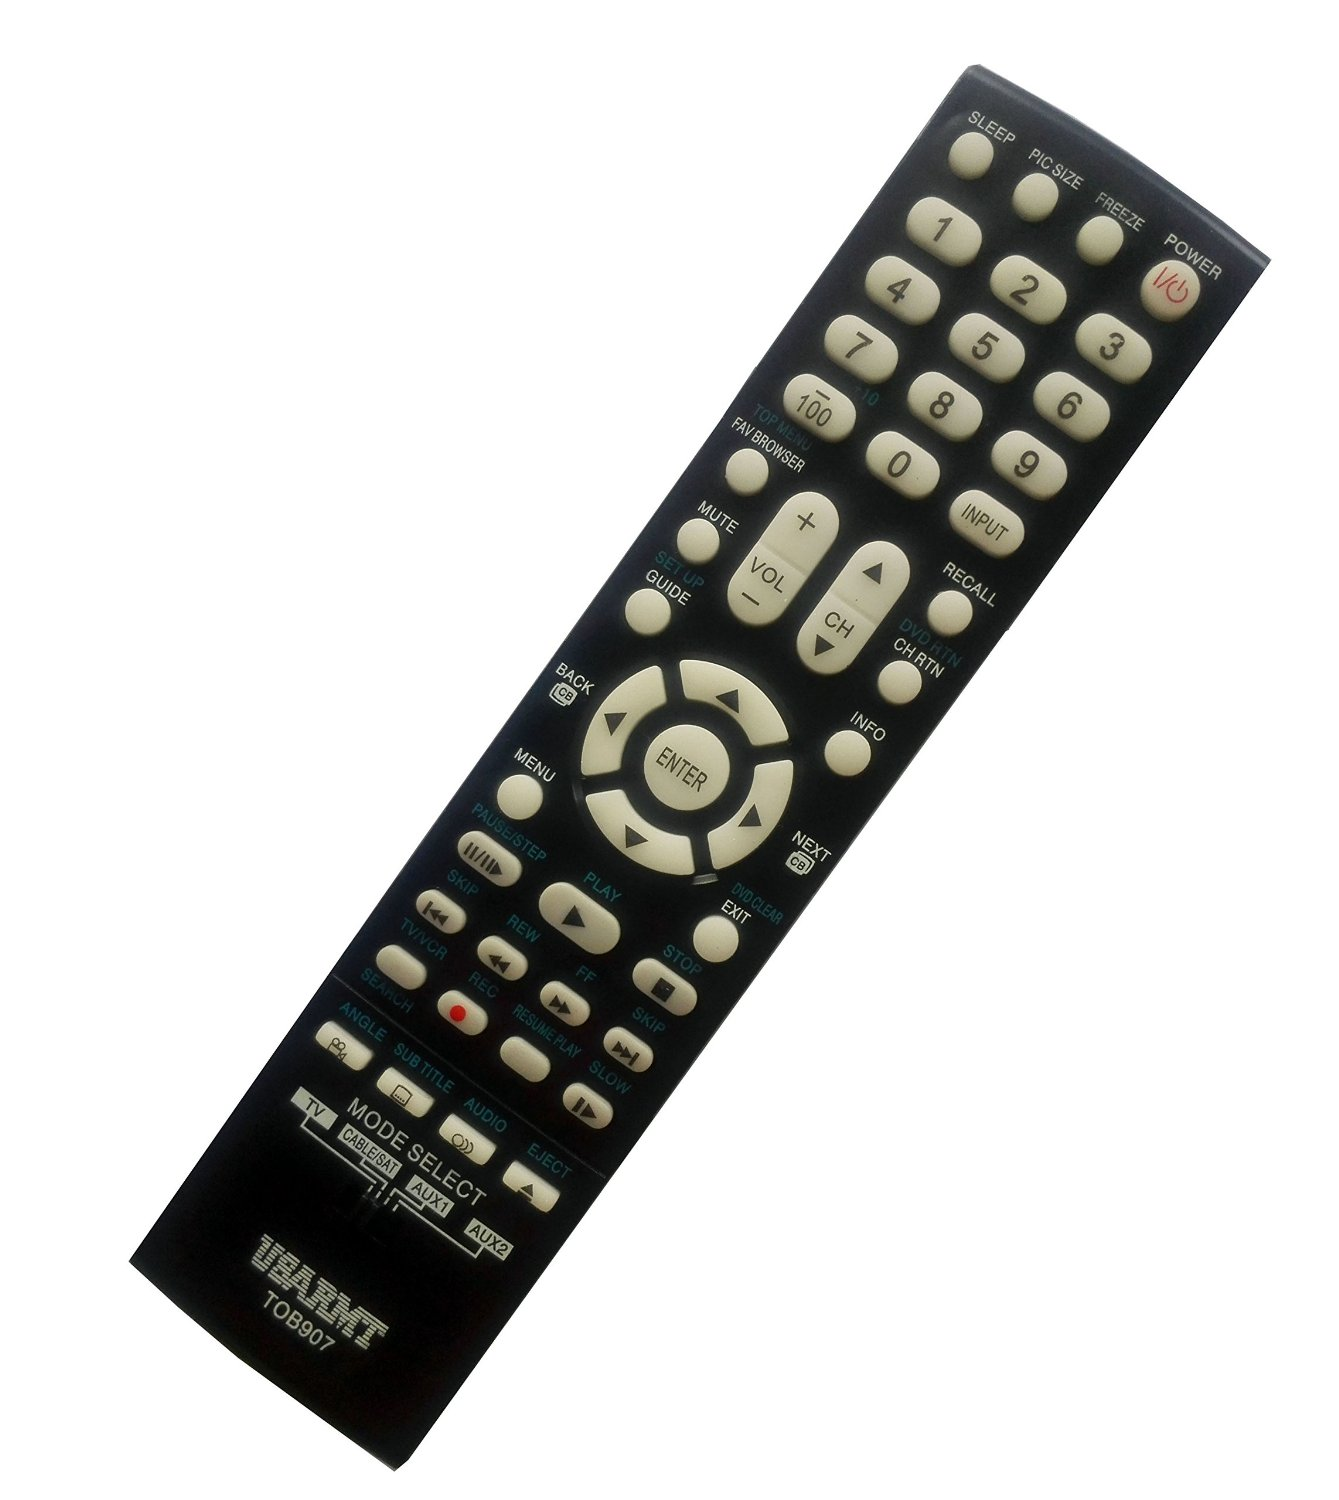 New Toshiba Universal 4-in-1 Remote Fit for 99% Toshiba TV DVD player Cable/SAT AUX, replace CT-8037 CT-90275 CT-90302 CT-90325, No need set up, easy to USE!